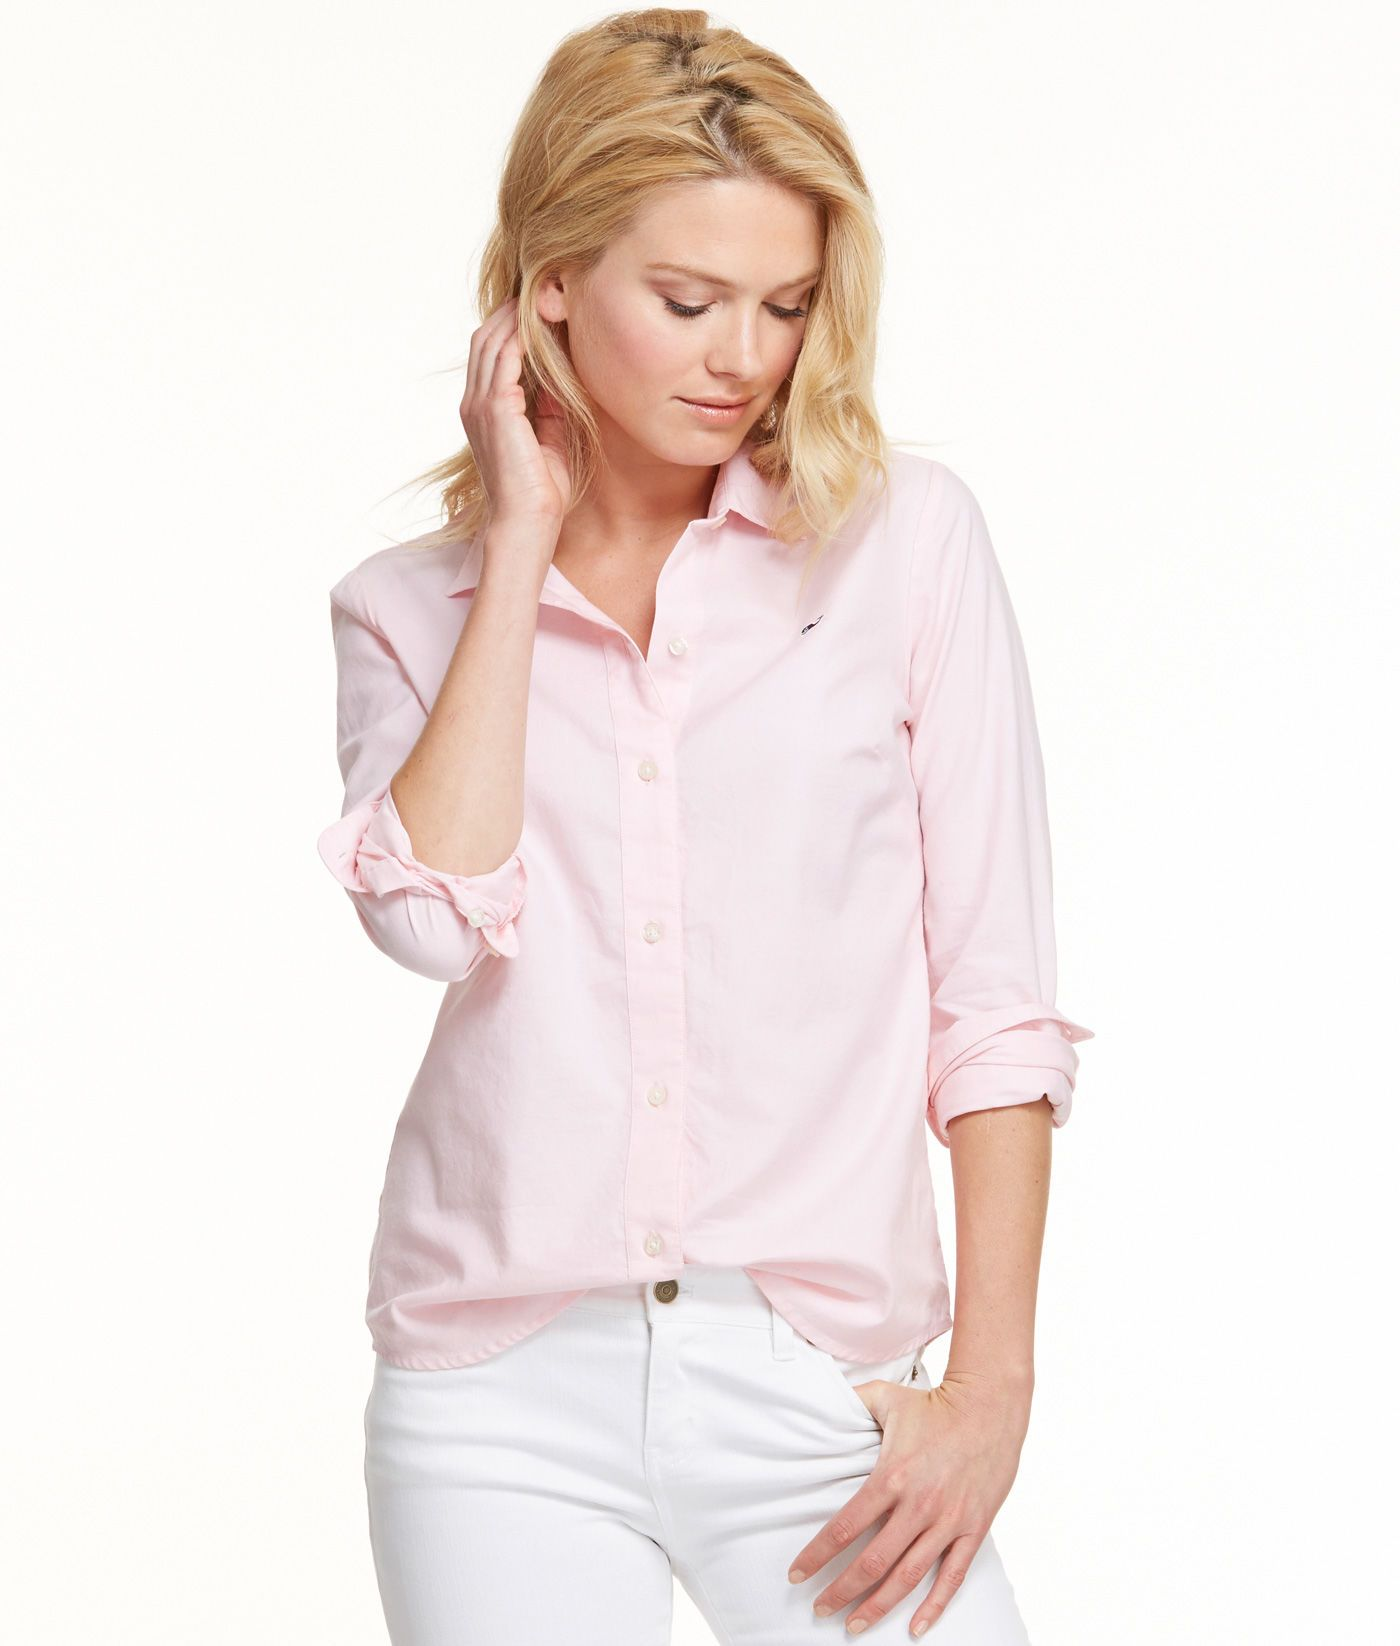 a0fc7f0d Women's Button down Shirts: White Oxford shirt for Women – Vineyard Vines